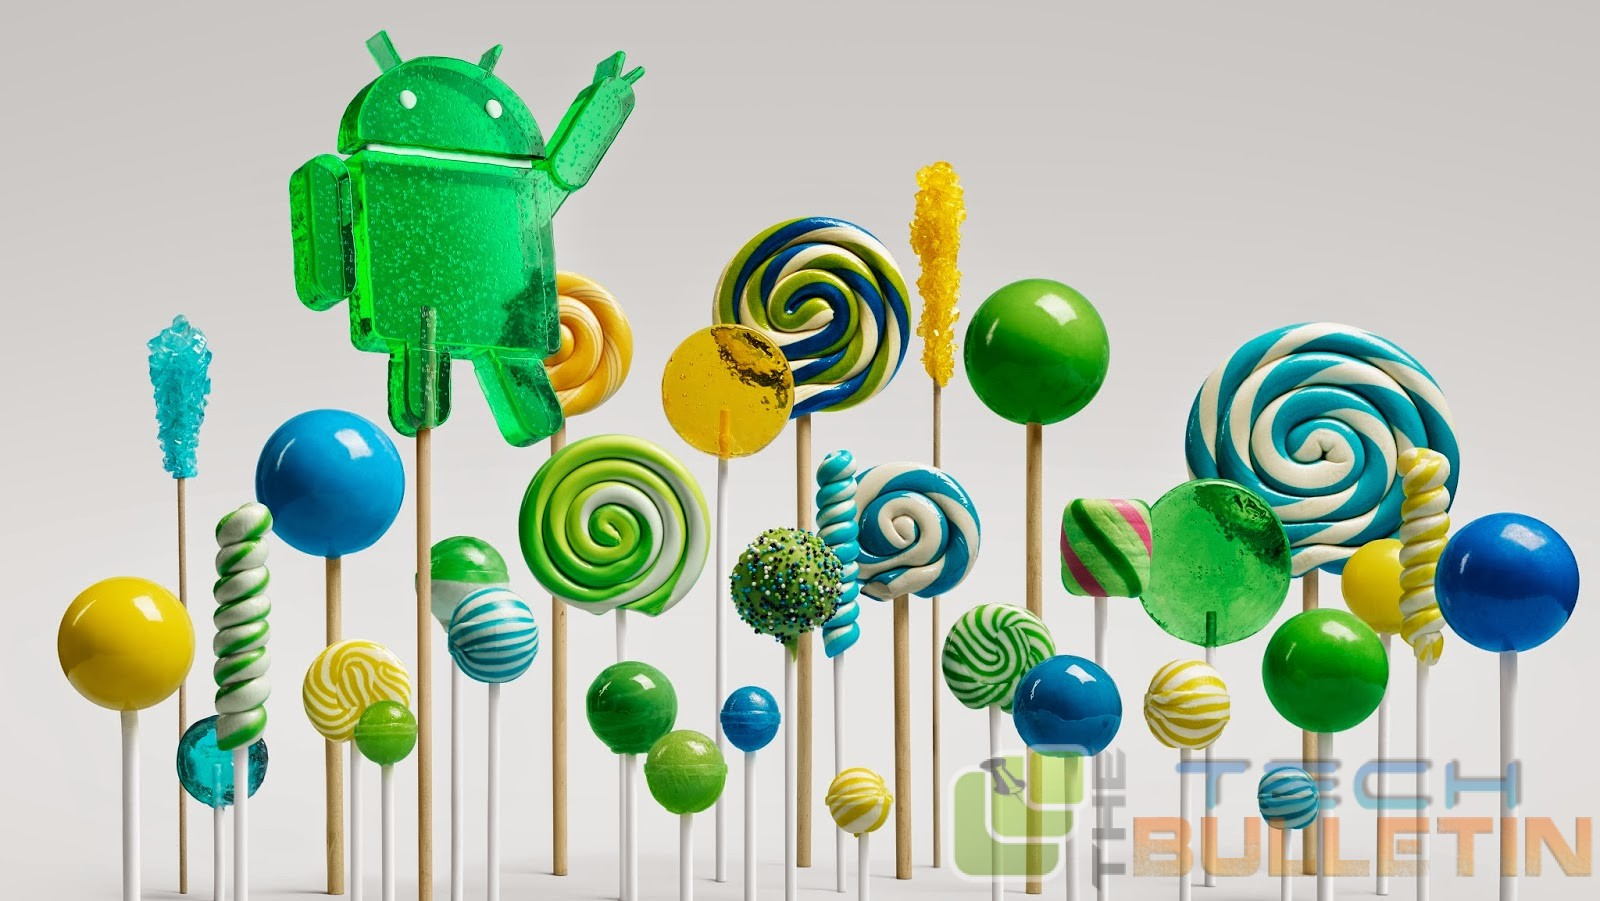 how to change android version to lollipop